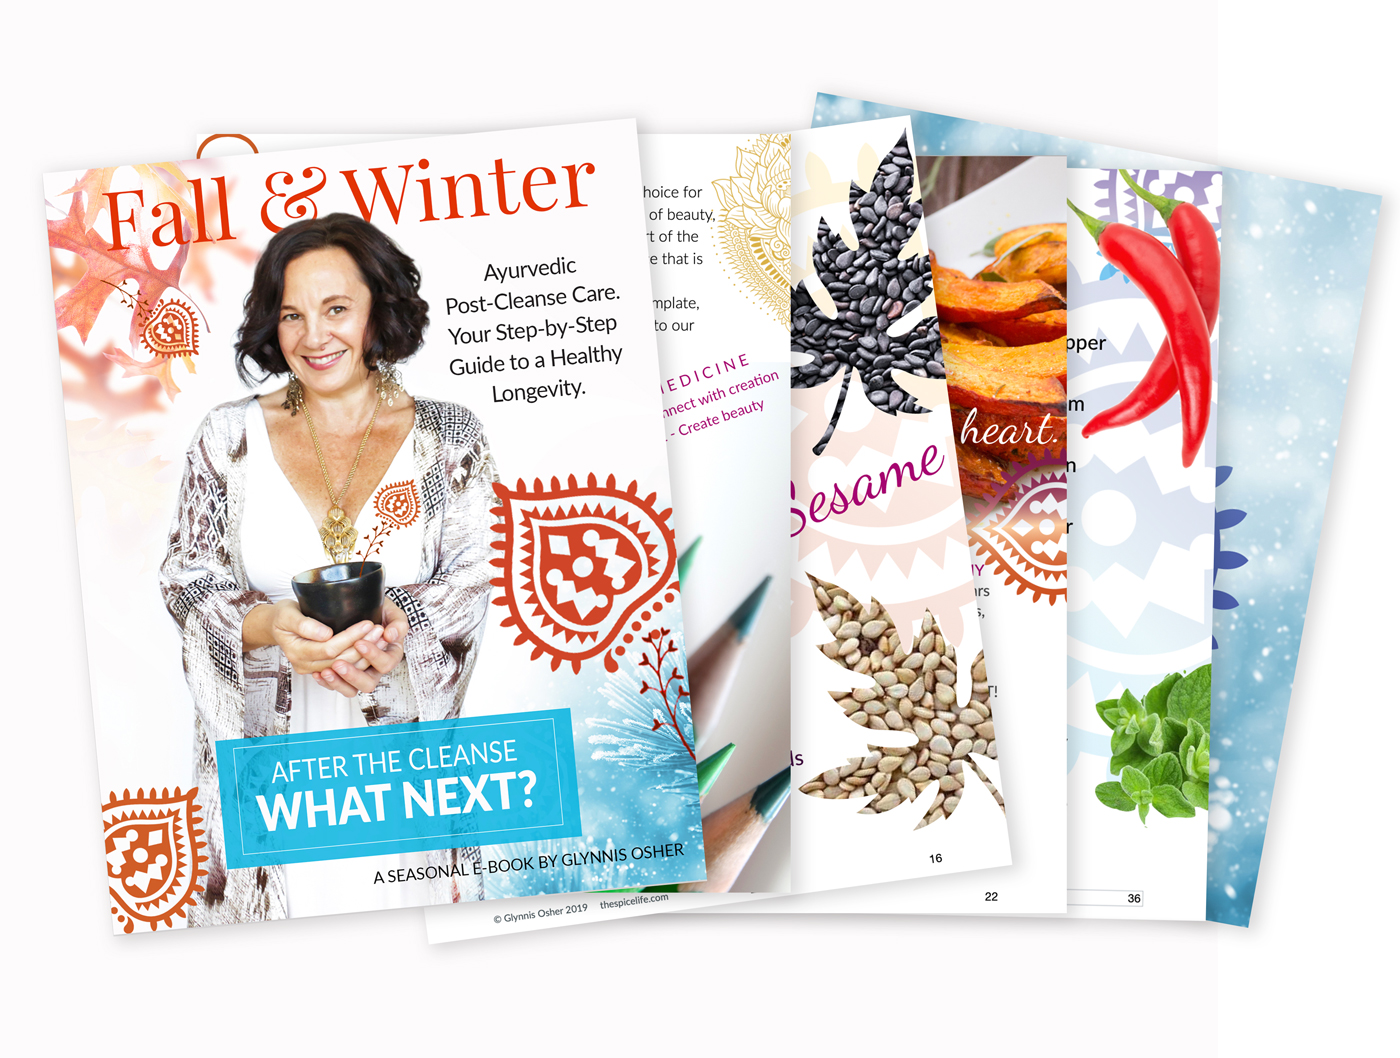 After the Fall Cleanse cover spread